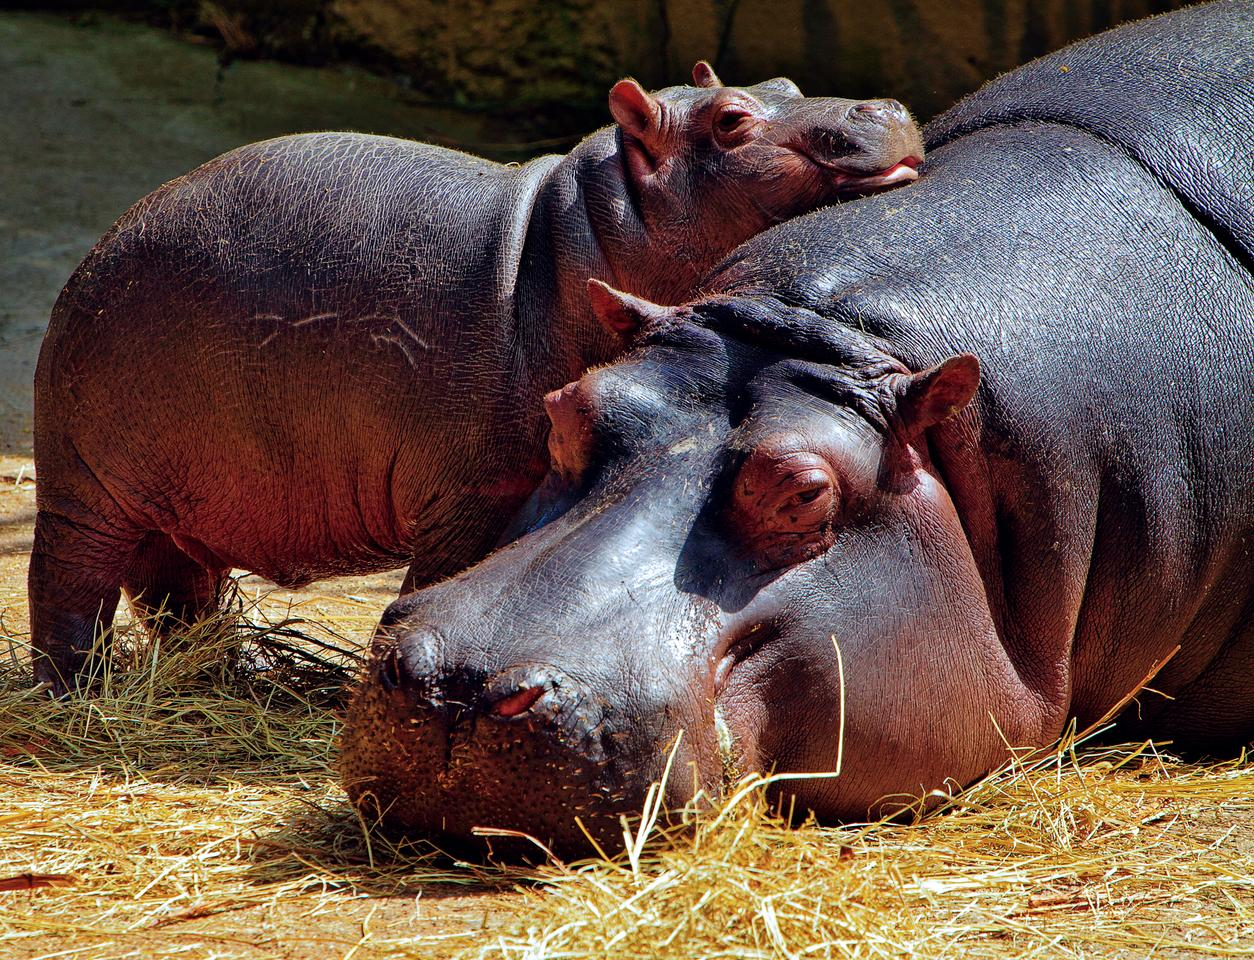 Pablo Escobar brought four hippos to Colombia. This population has now grown to between 80 and 100